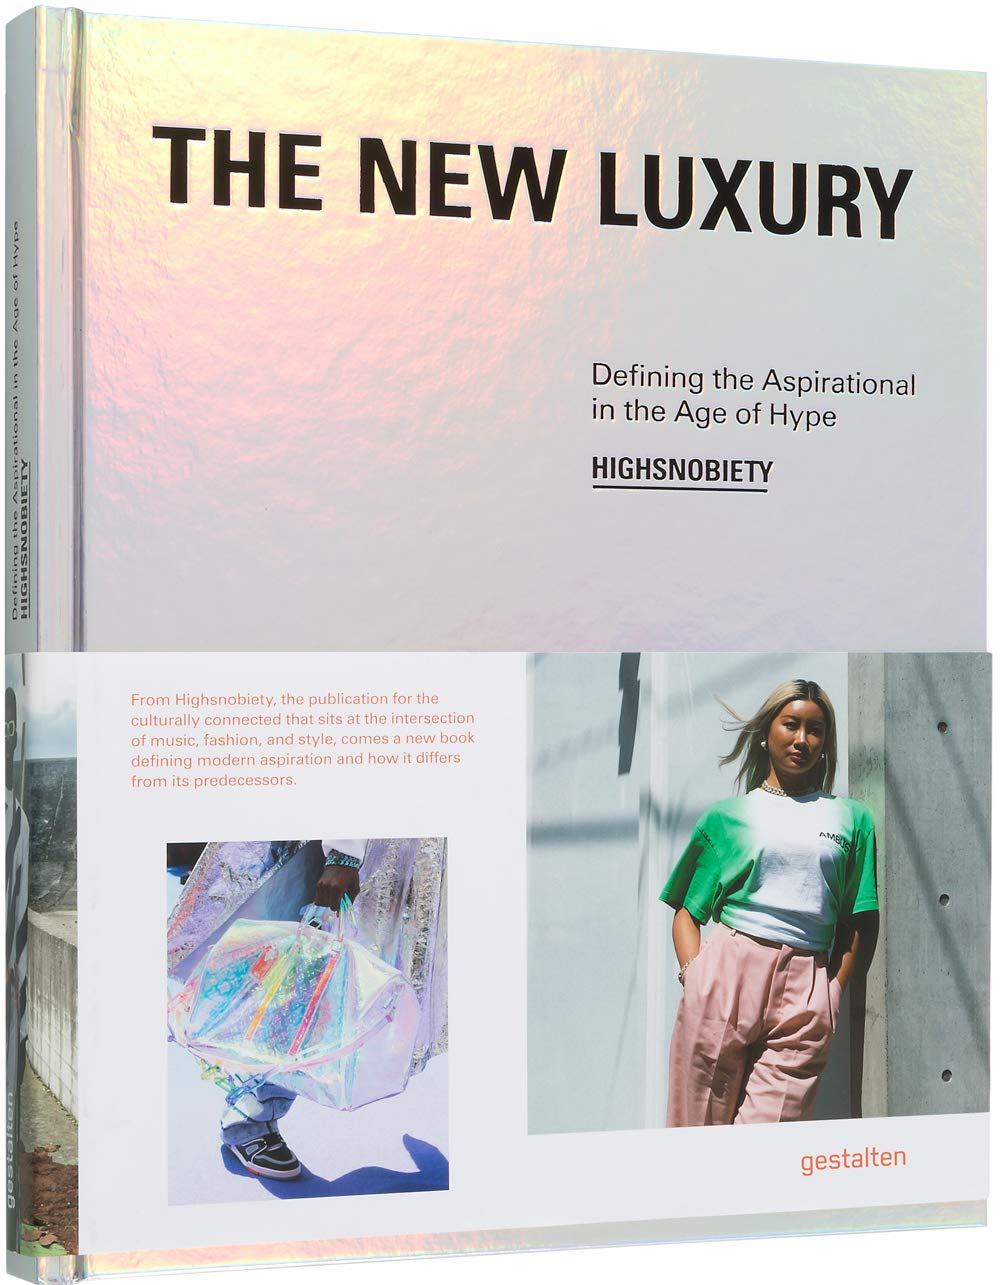 The New Luxury: Defining the Aspirational in the Age of Hype